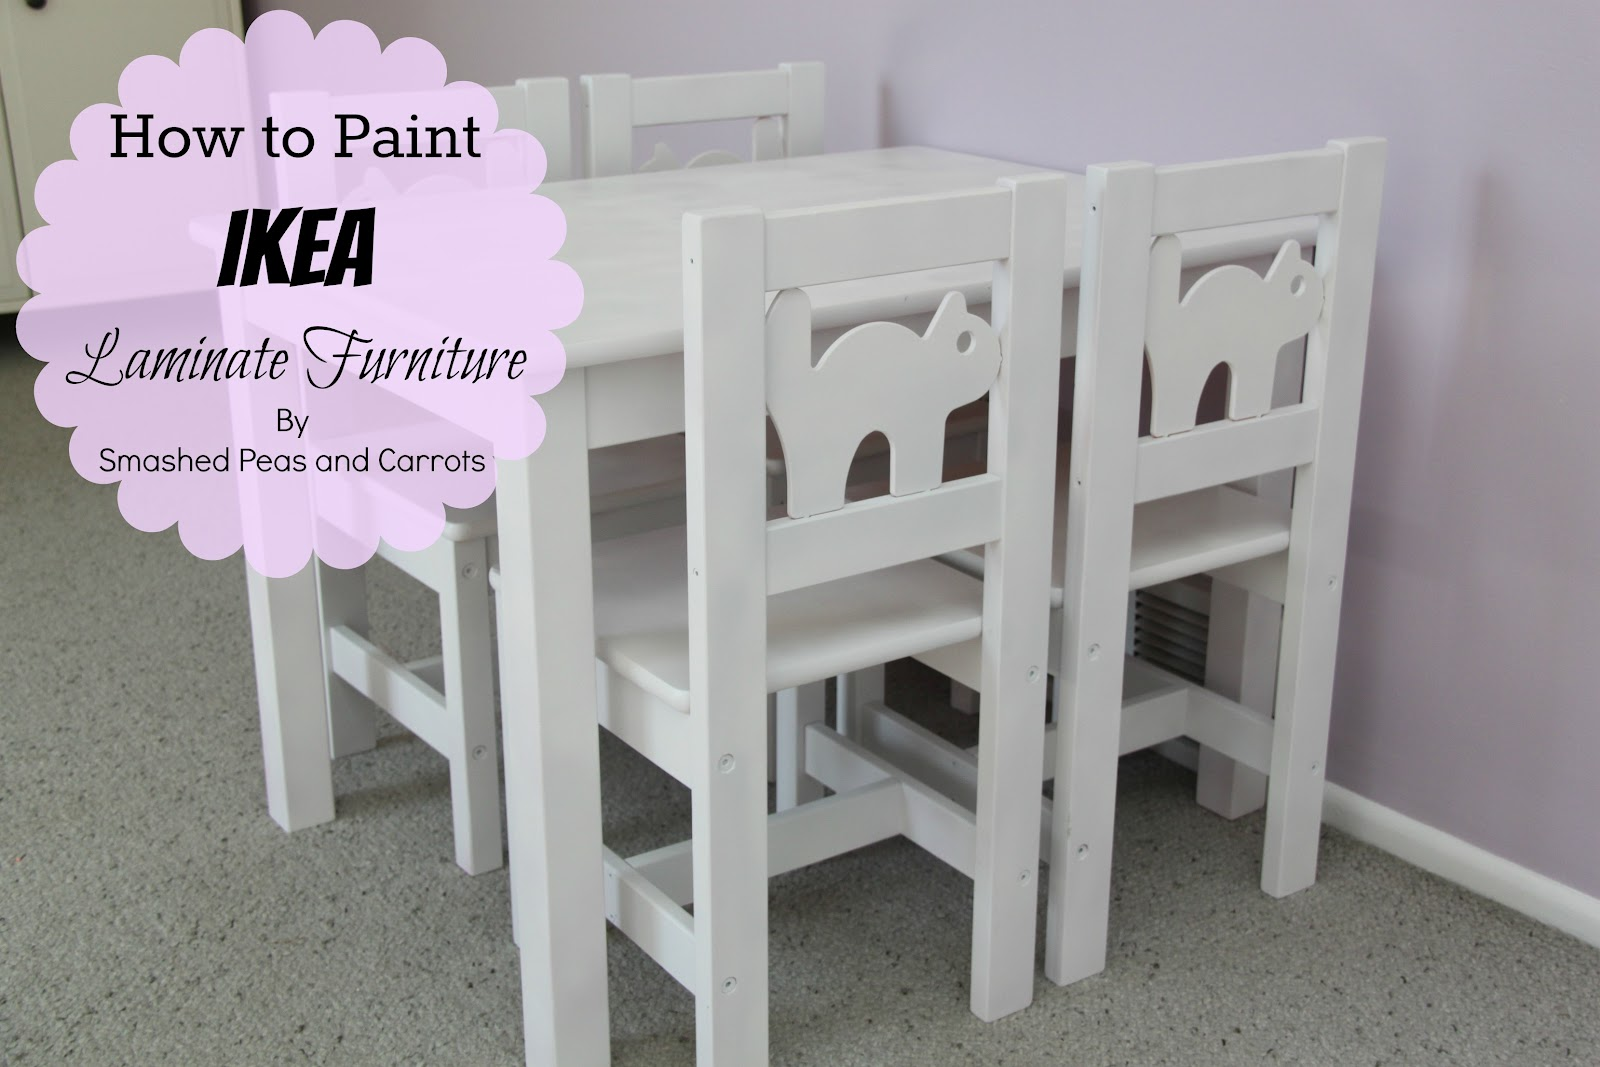 How To Paint Ikea Laminate Furniture Tutorial